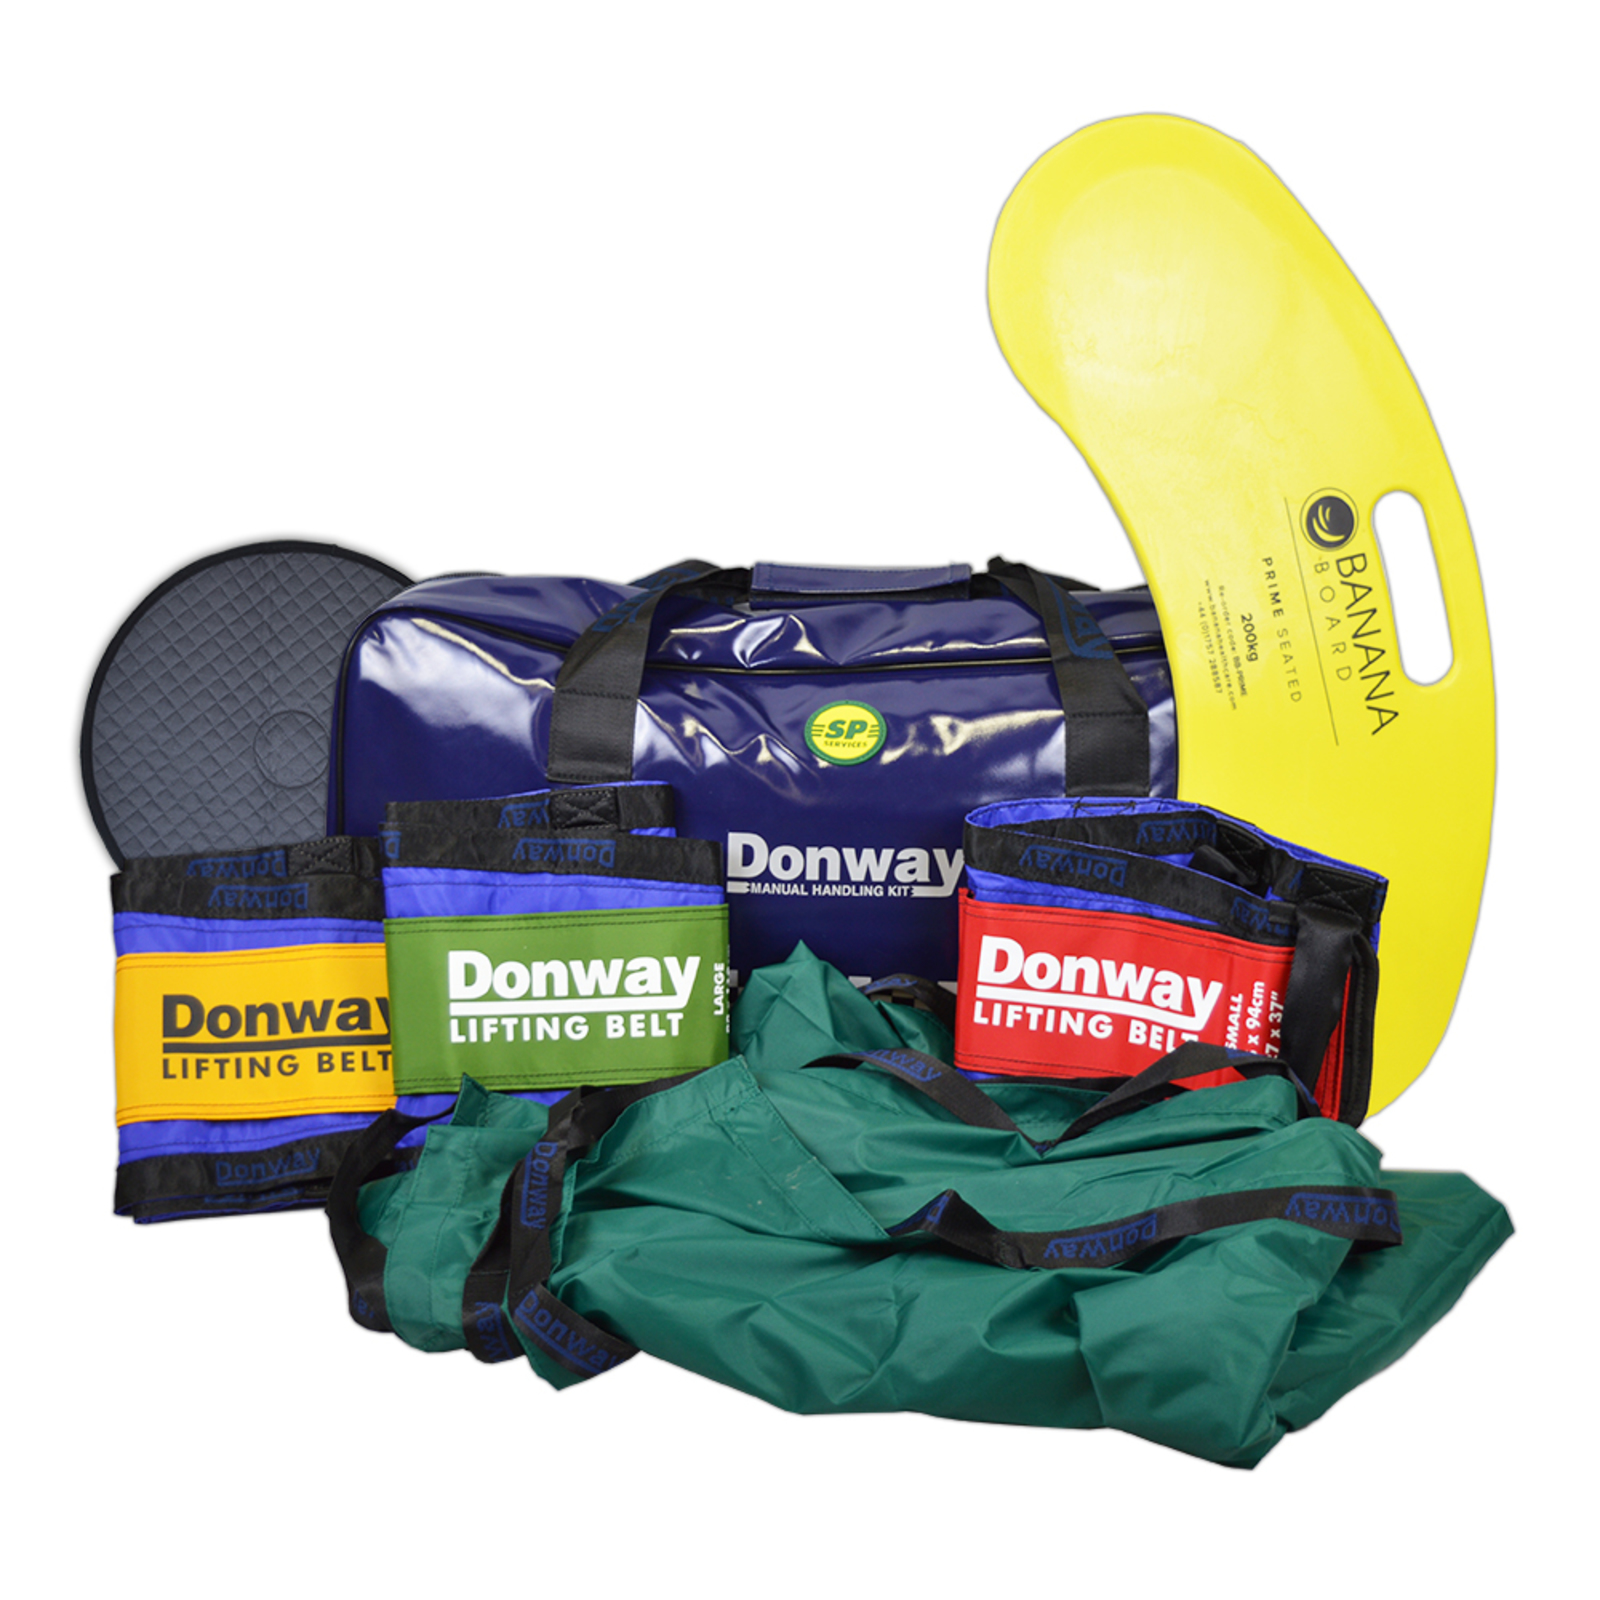 Donway Manual Handling & Lifting Kit